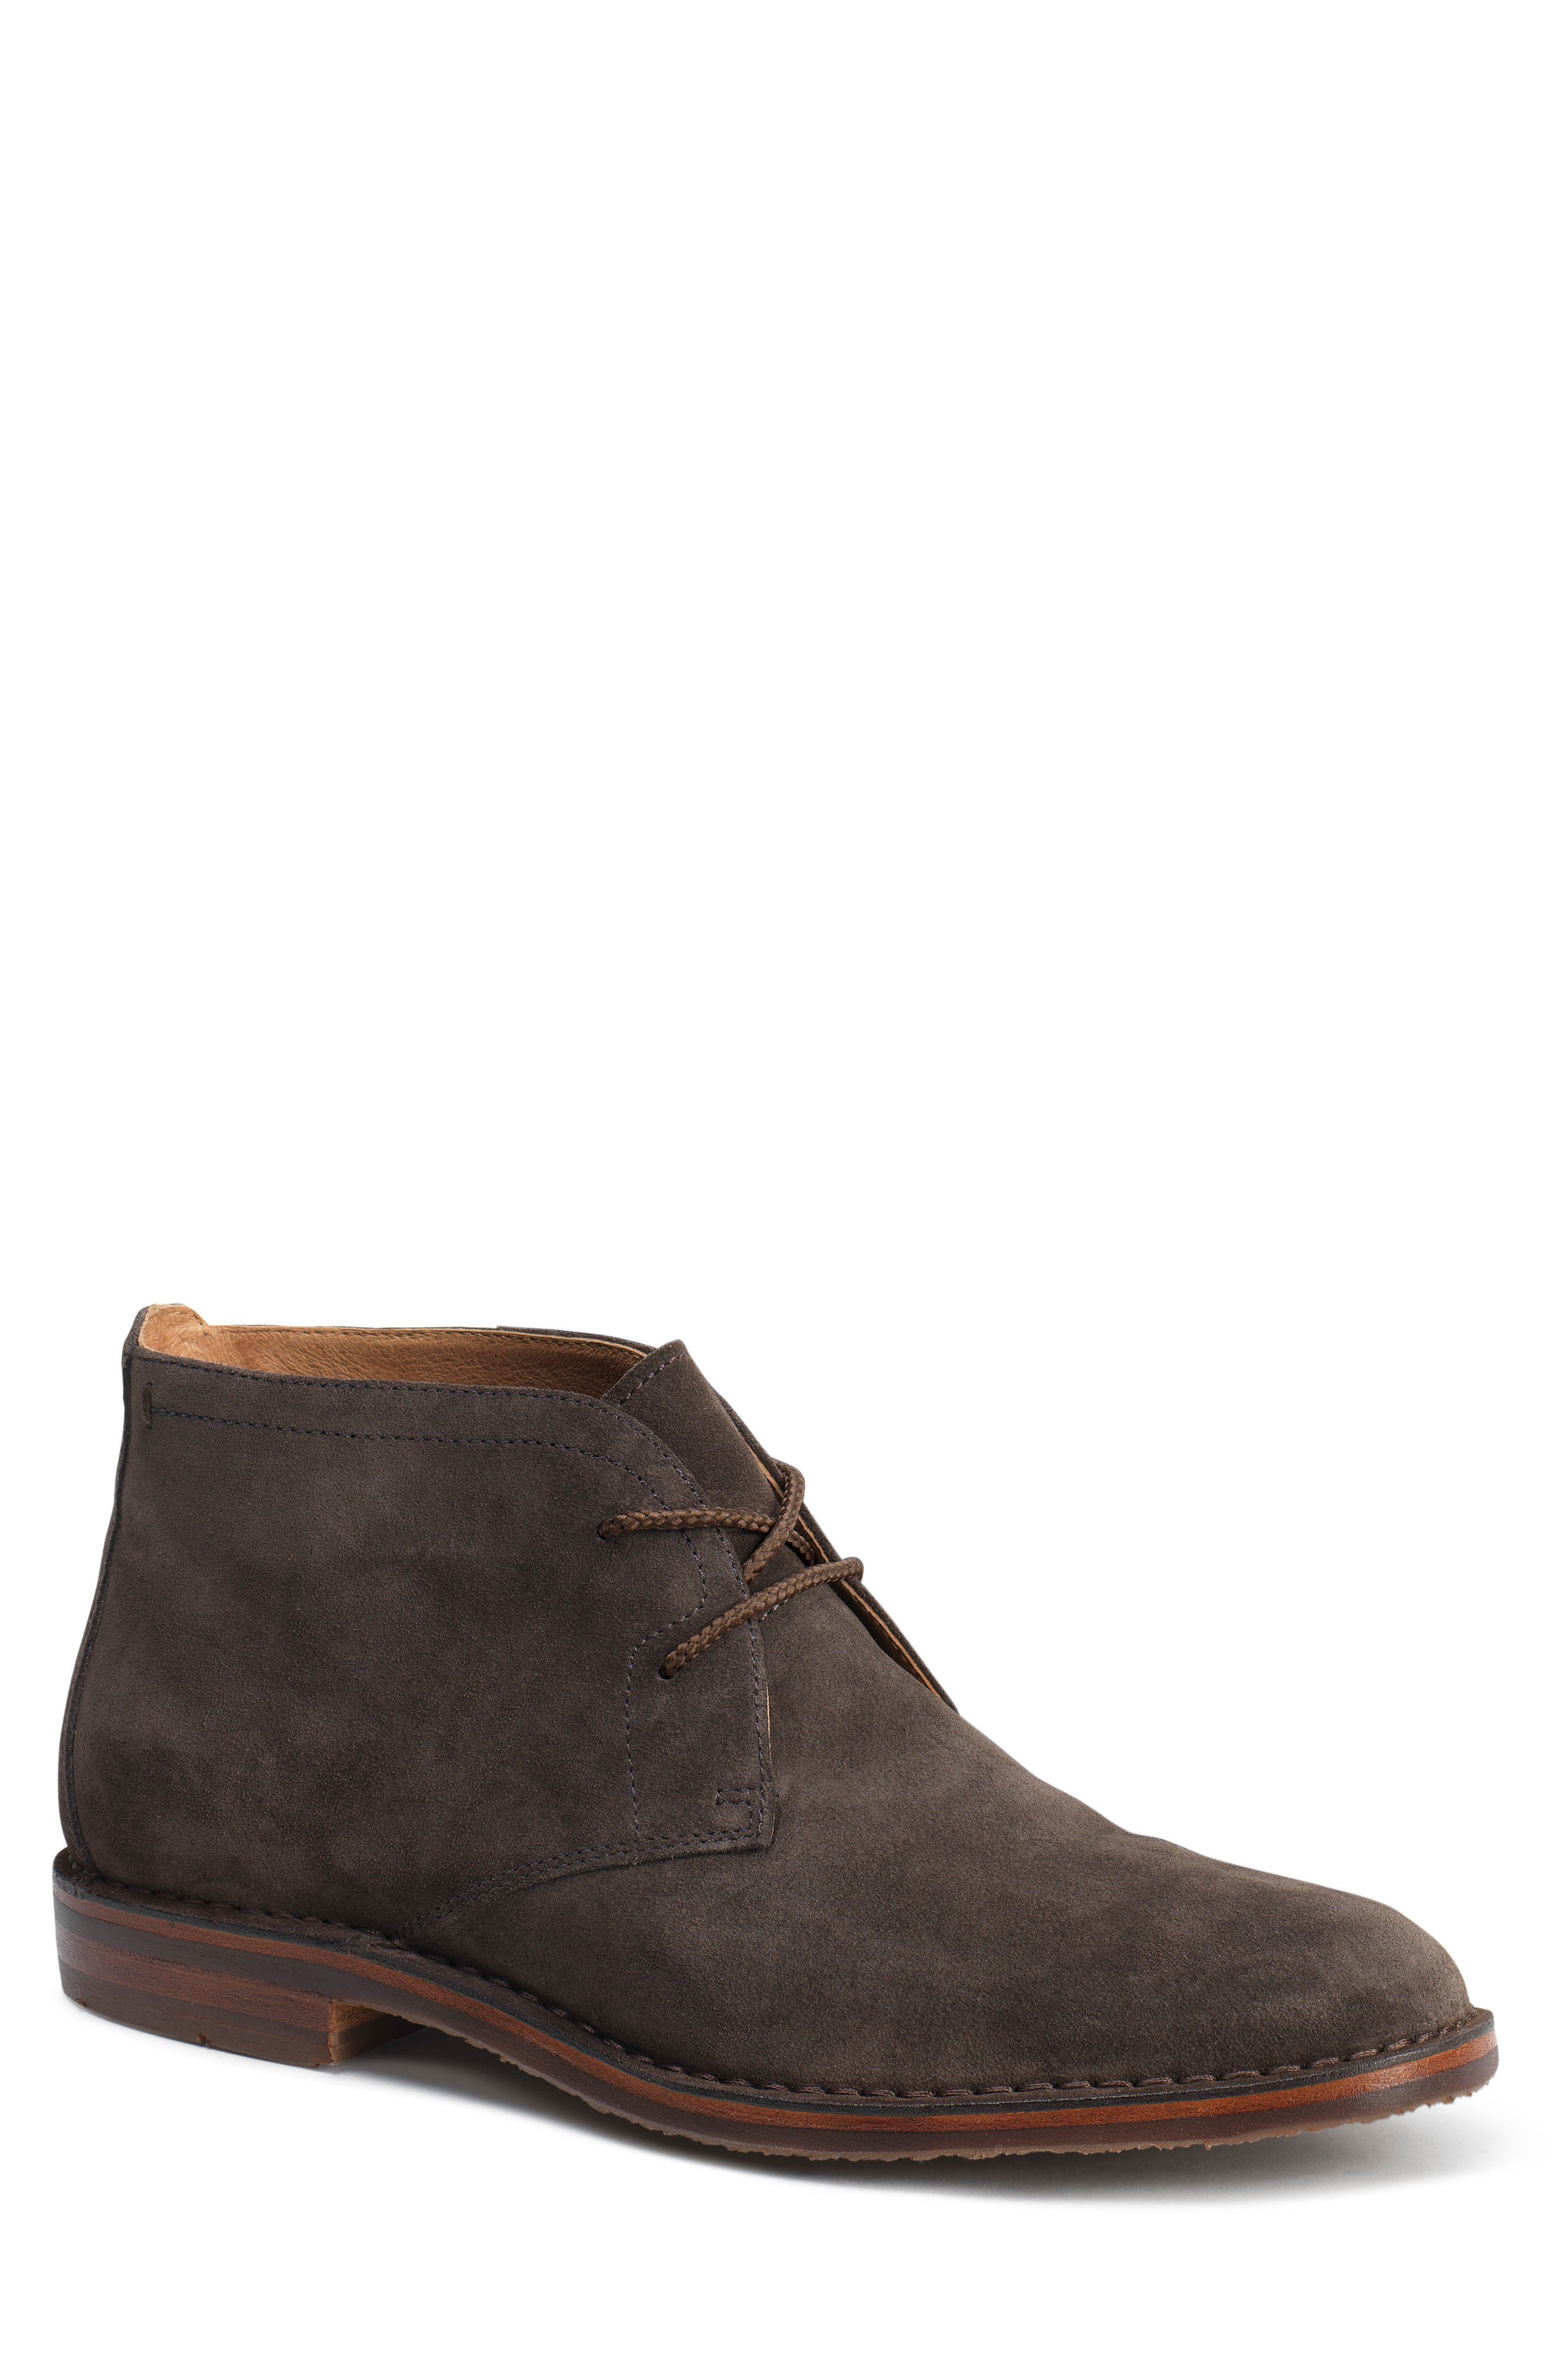 TRASK 'Brady' Chukka Boot, Main, color, GRAY SUEDE